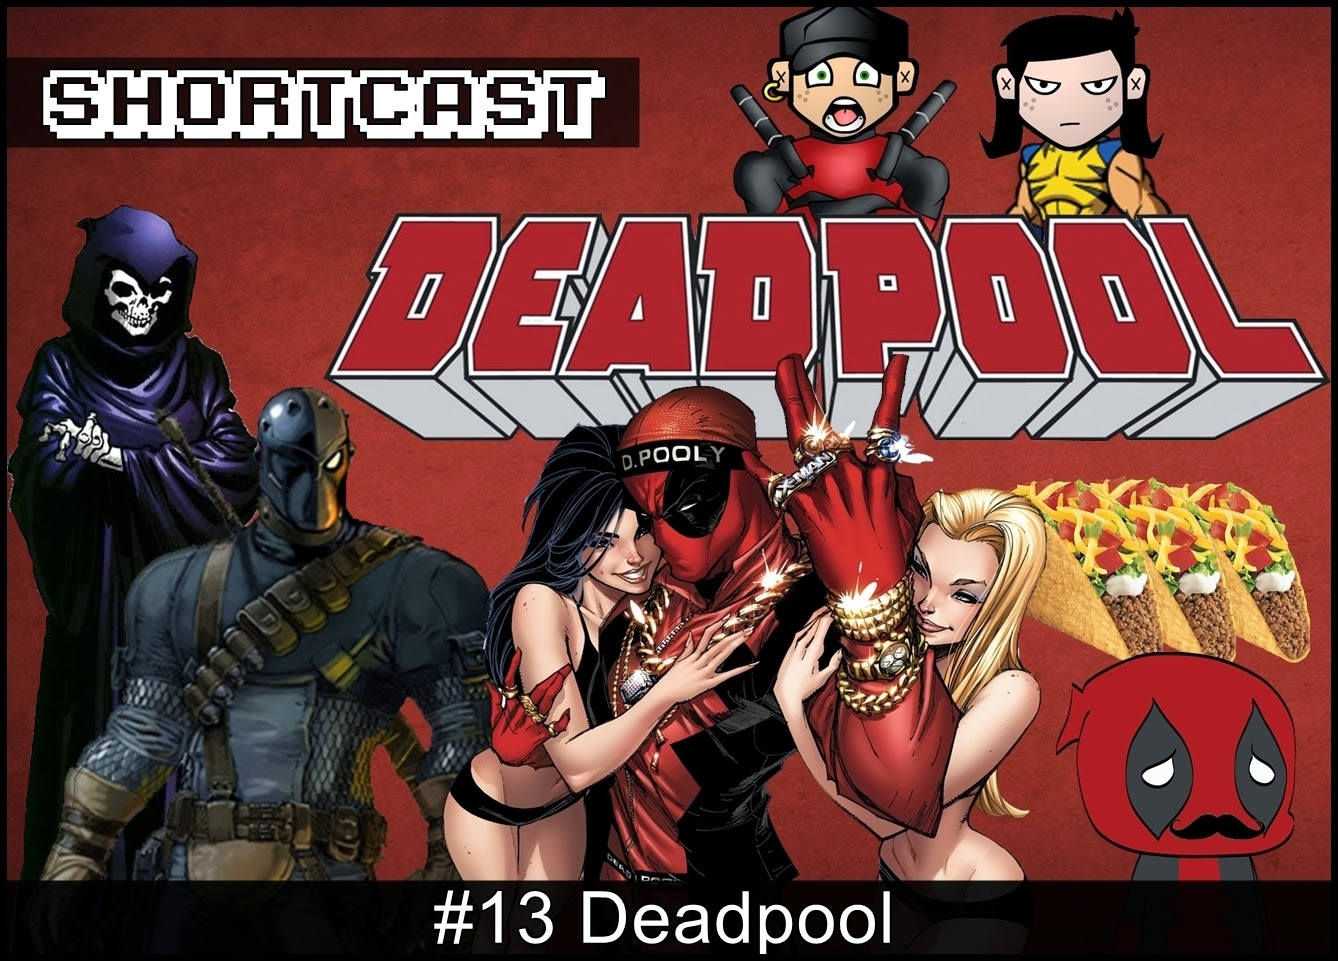 Shortcast #13 - Deadpool